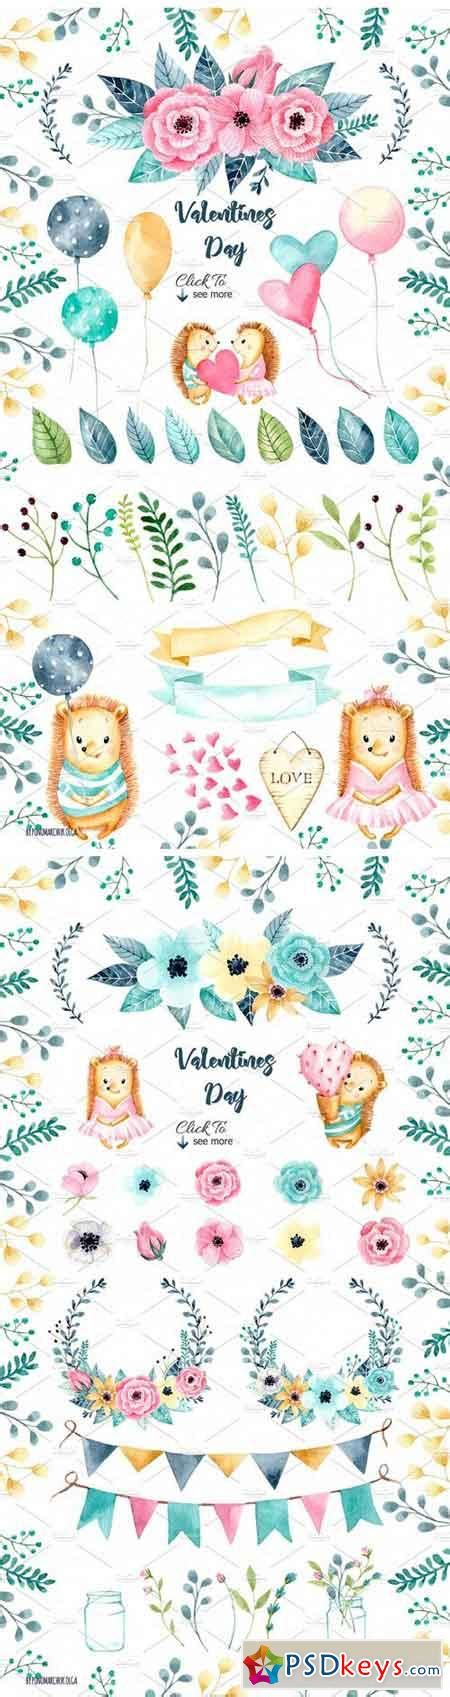 valentines day torrent s day 1236605 187 free photoshop vector